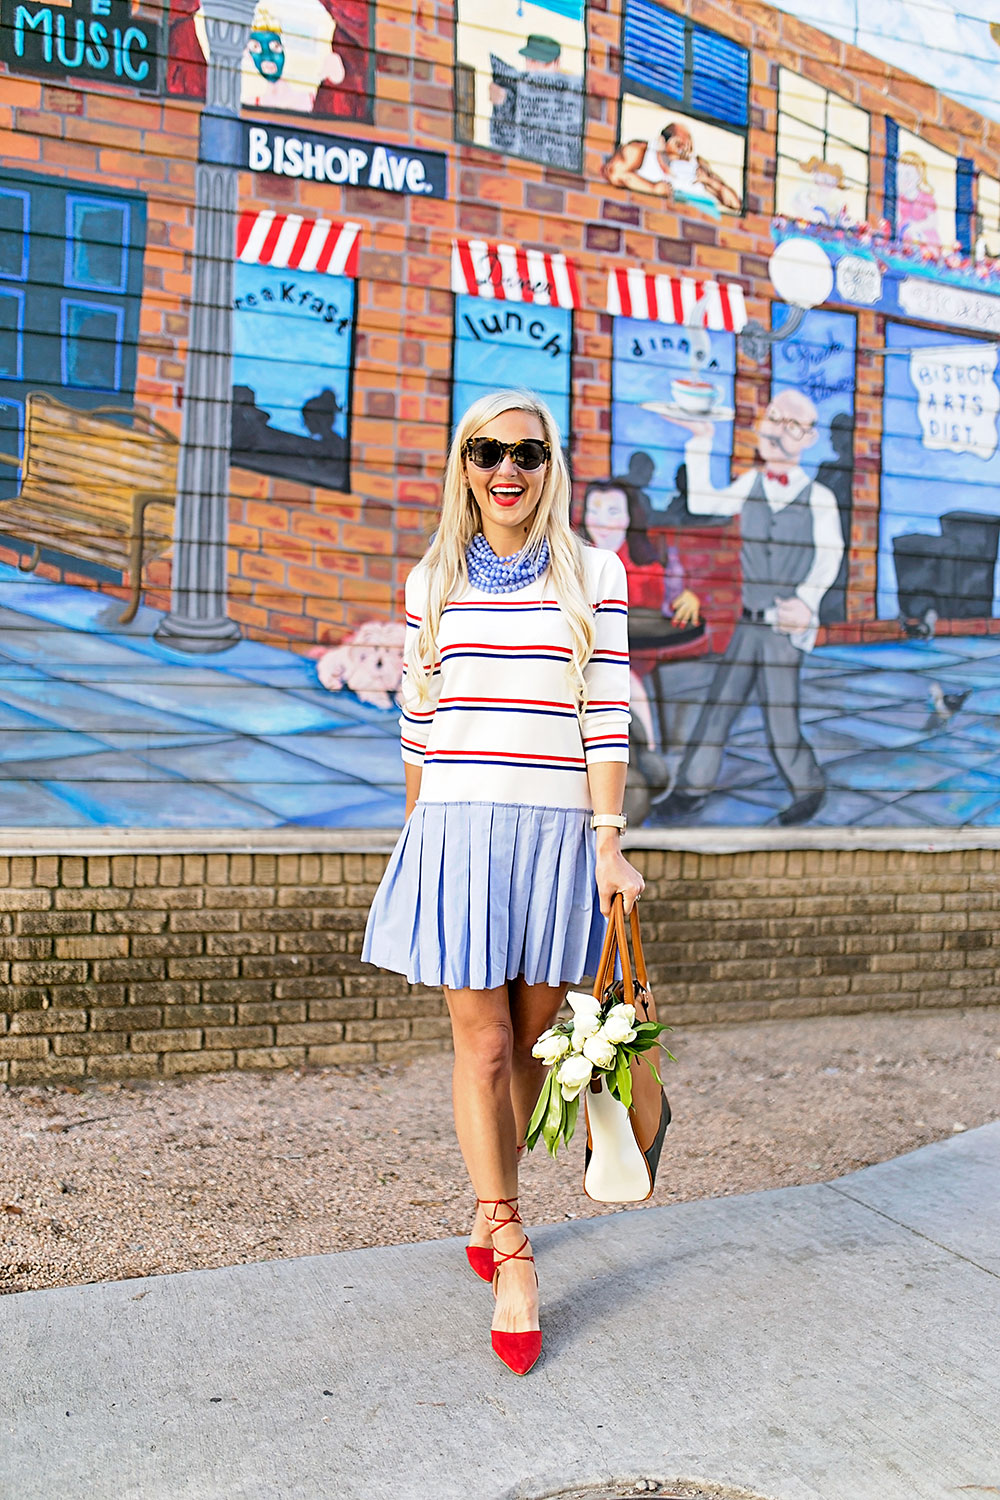 vandi-fair-blog-lauren-vandiver-dallas-texas-southern-fashion-blogger-modcloth-striped-pleated-sweater-dress-in-the-face-of-ad-varsity-three-tone-satchel-bag-triple-the-charm-cognac-2